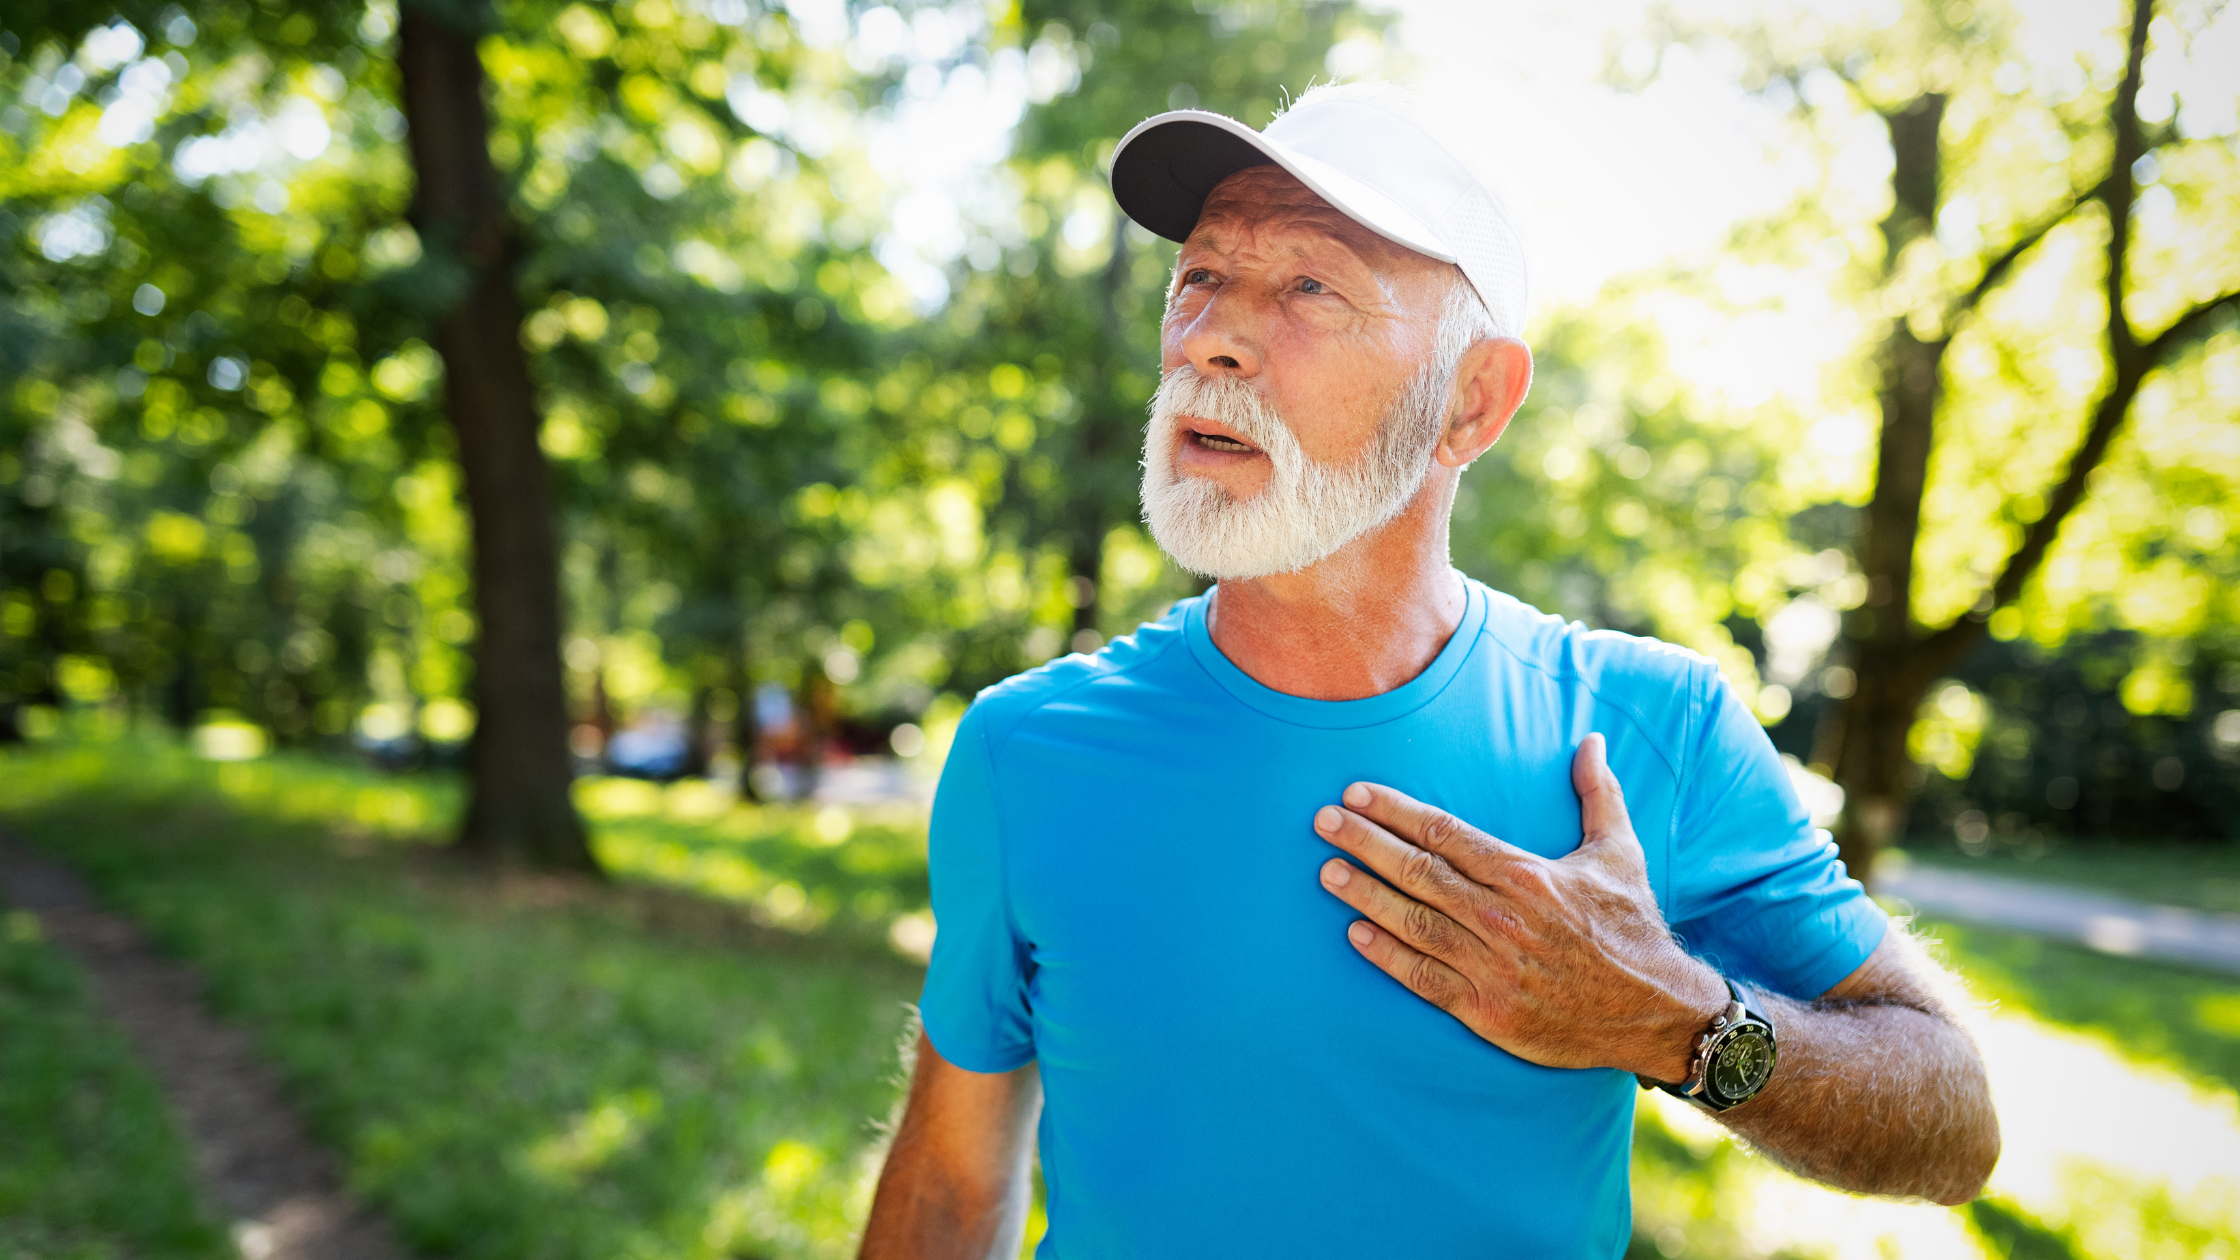 man in running outfit clutching chest